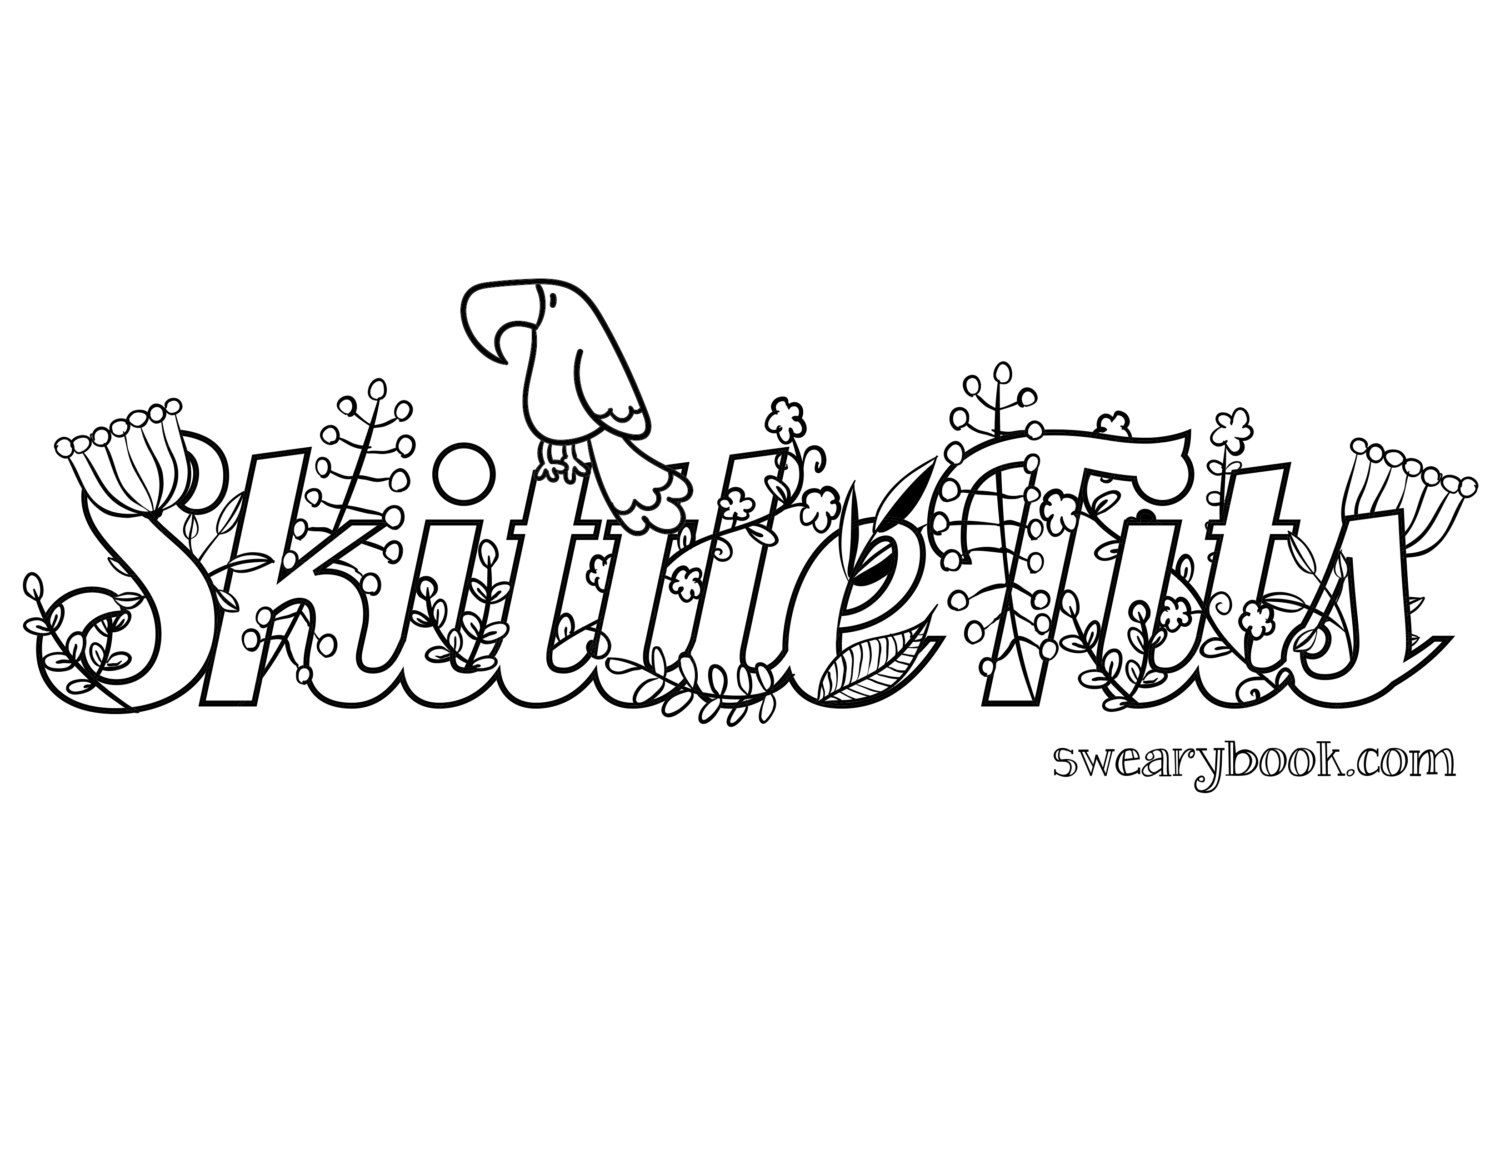 Skittle Tits Swear Words Coloring Page From The Sweary Coloring